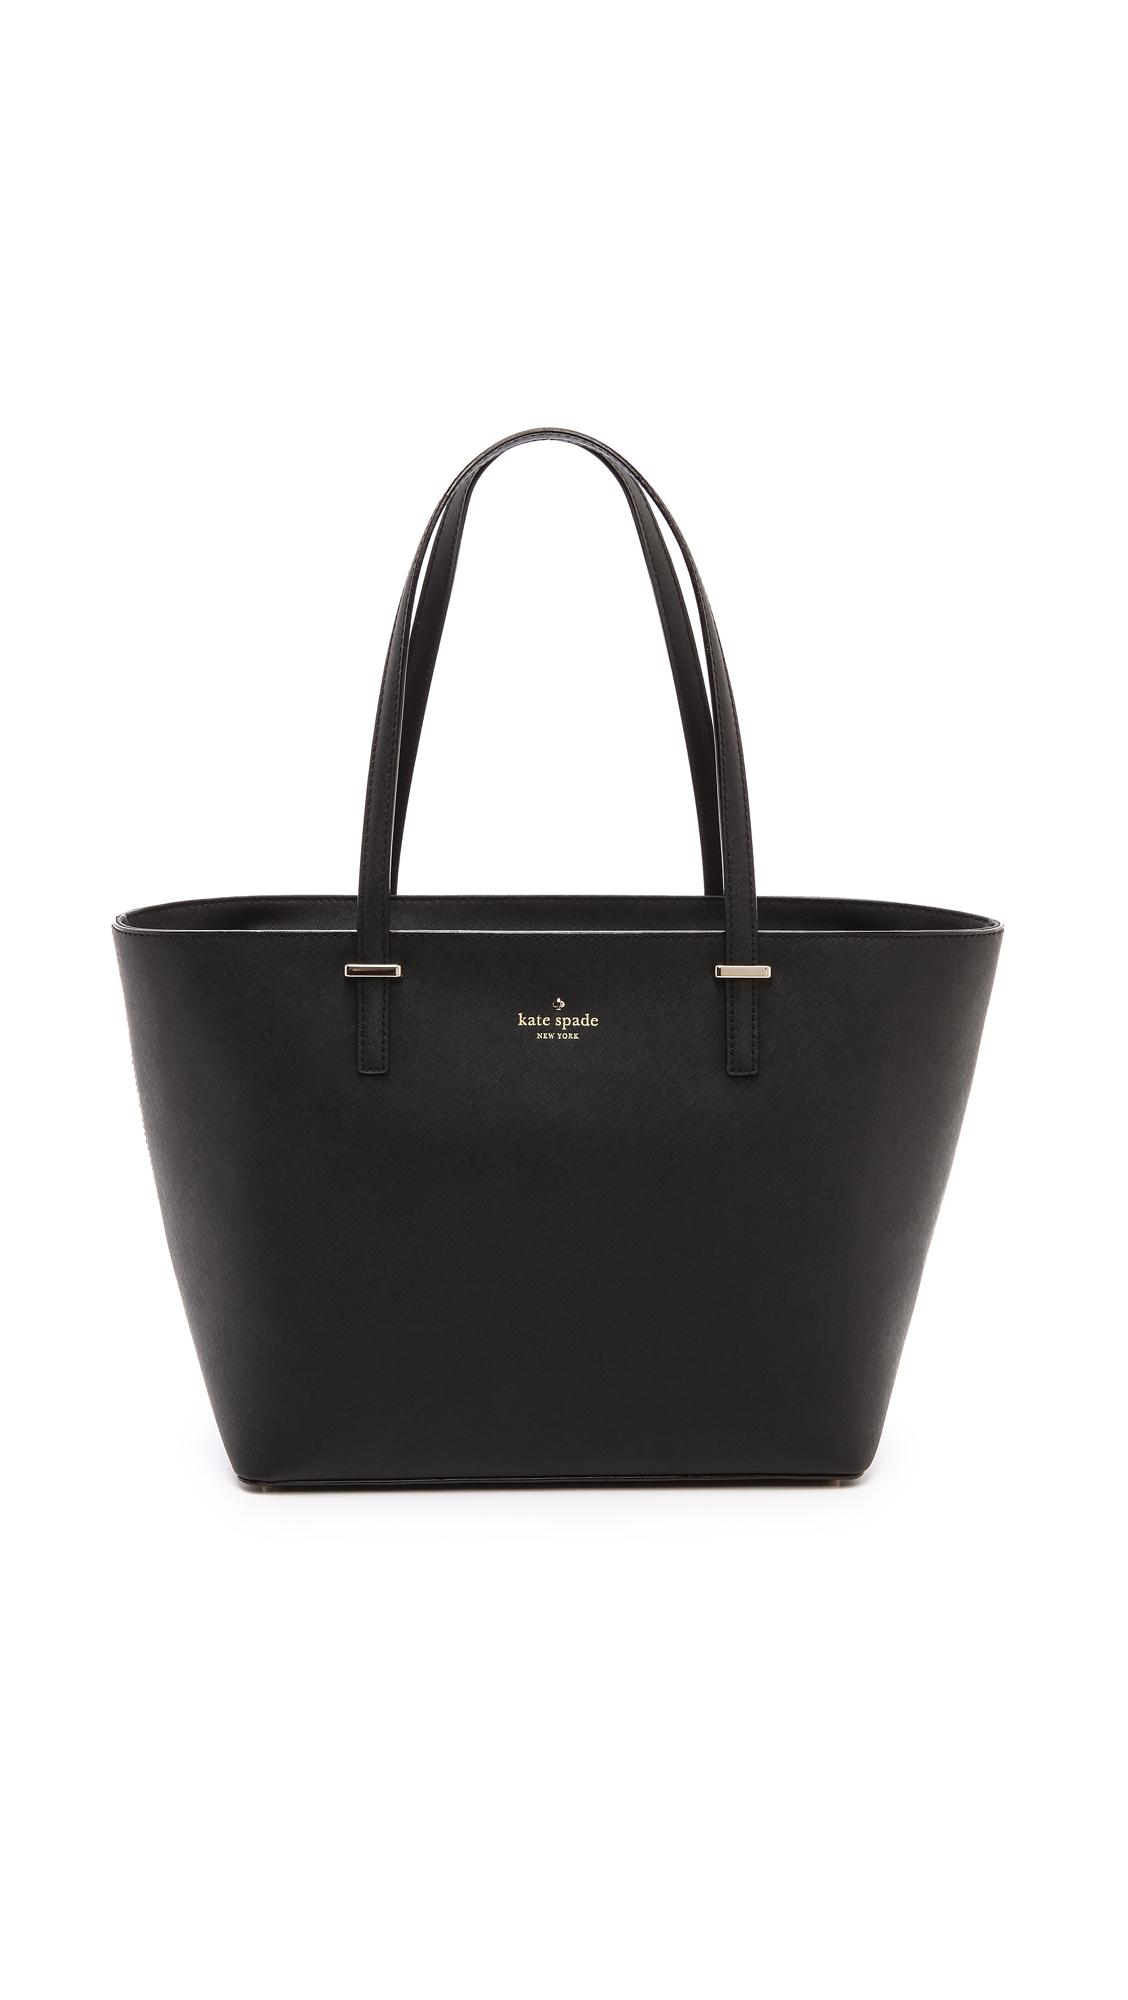 Kate spade outlet online shop